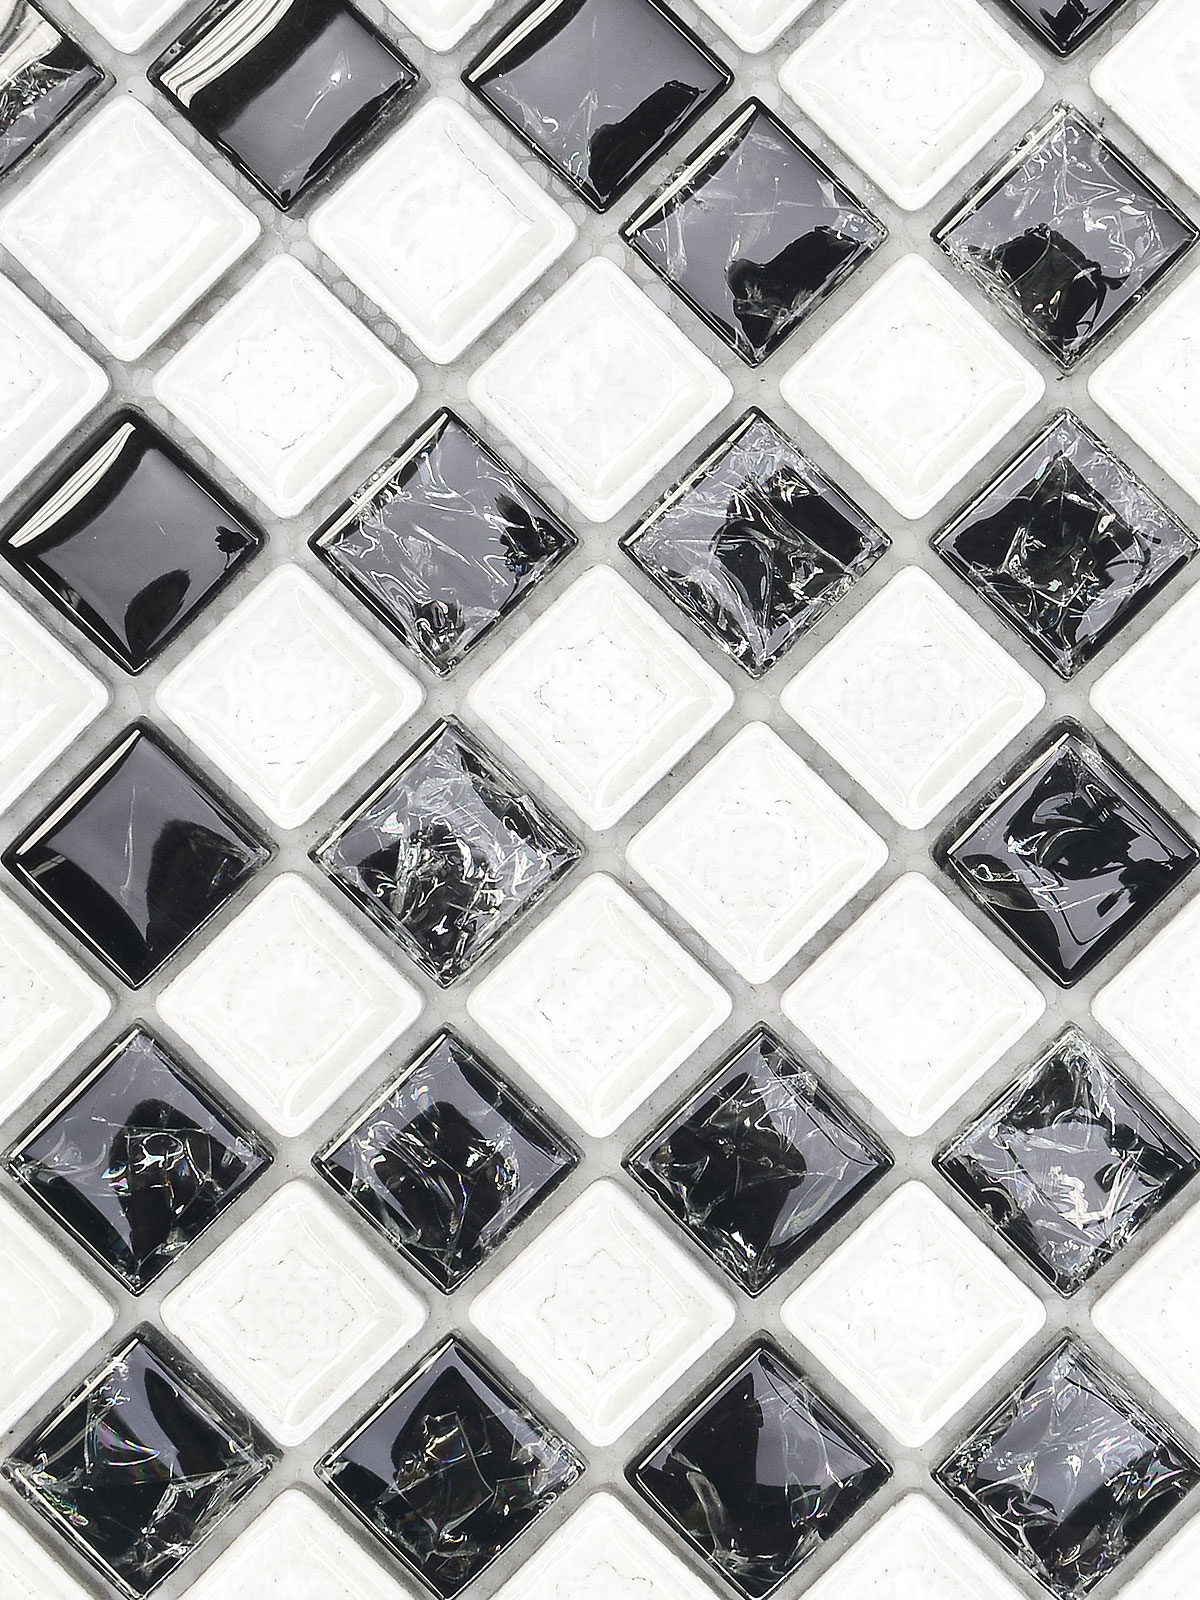 BA1152 Black White Glass Ceramic Backsplash Tile from backsplash.com